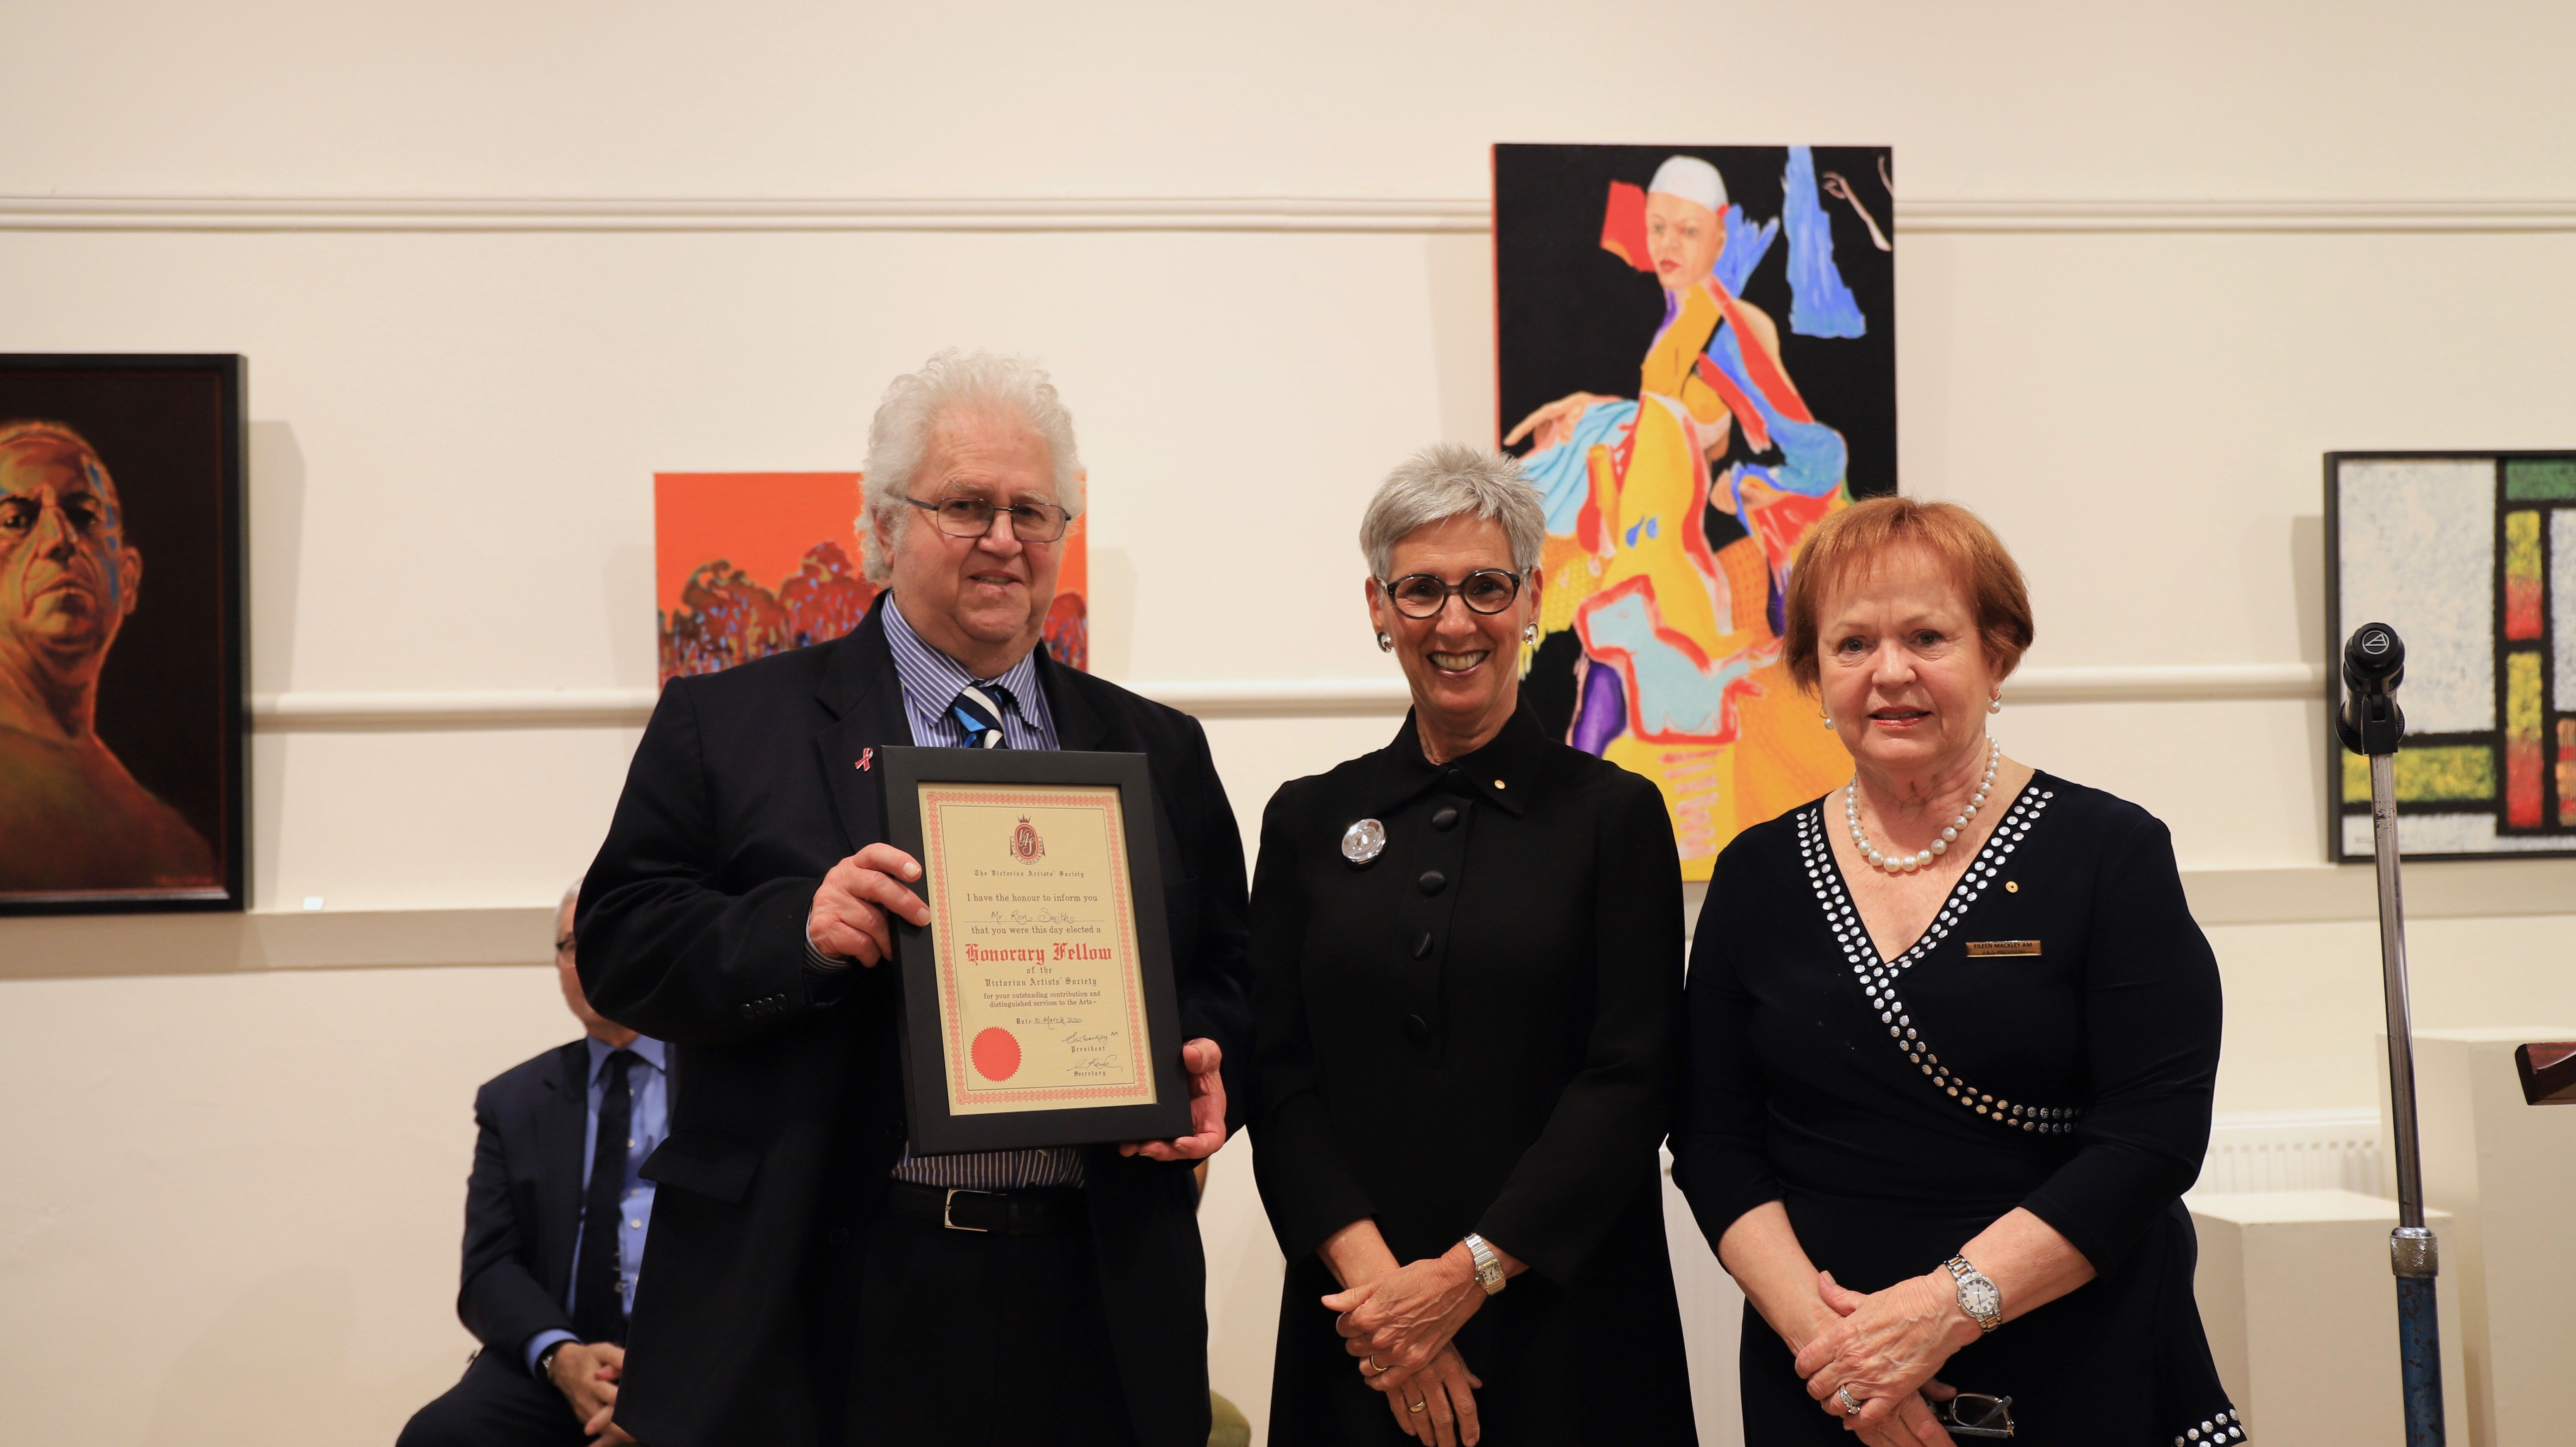 Ron Smith receiving his award from the governor